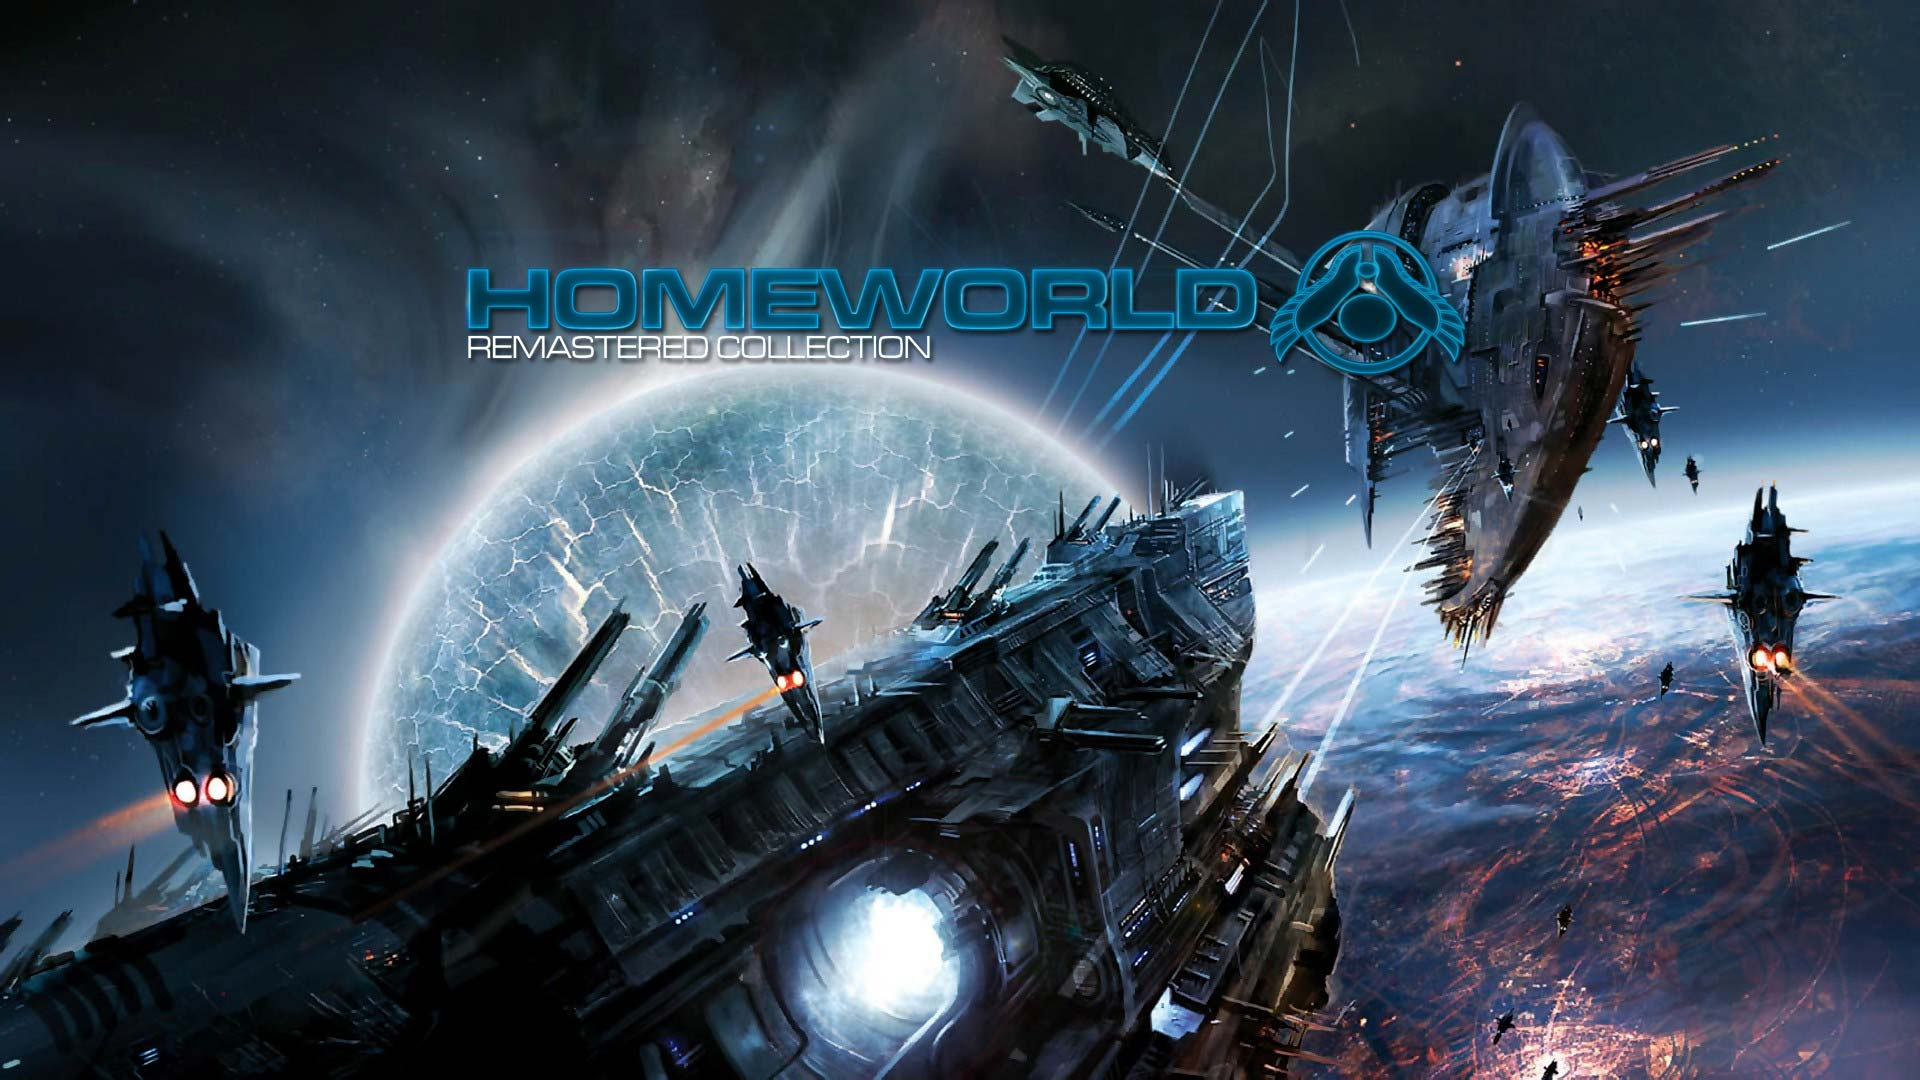 HomeworldBG